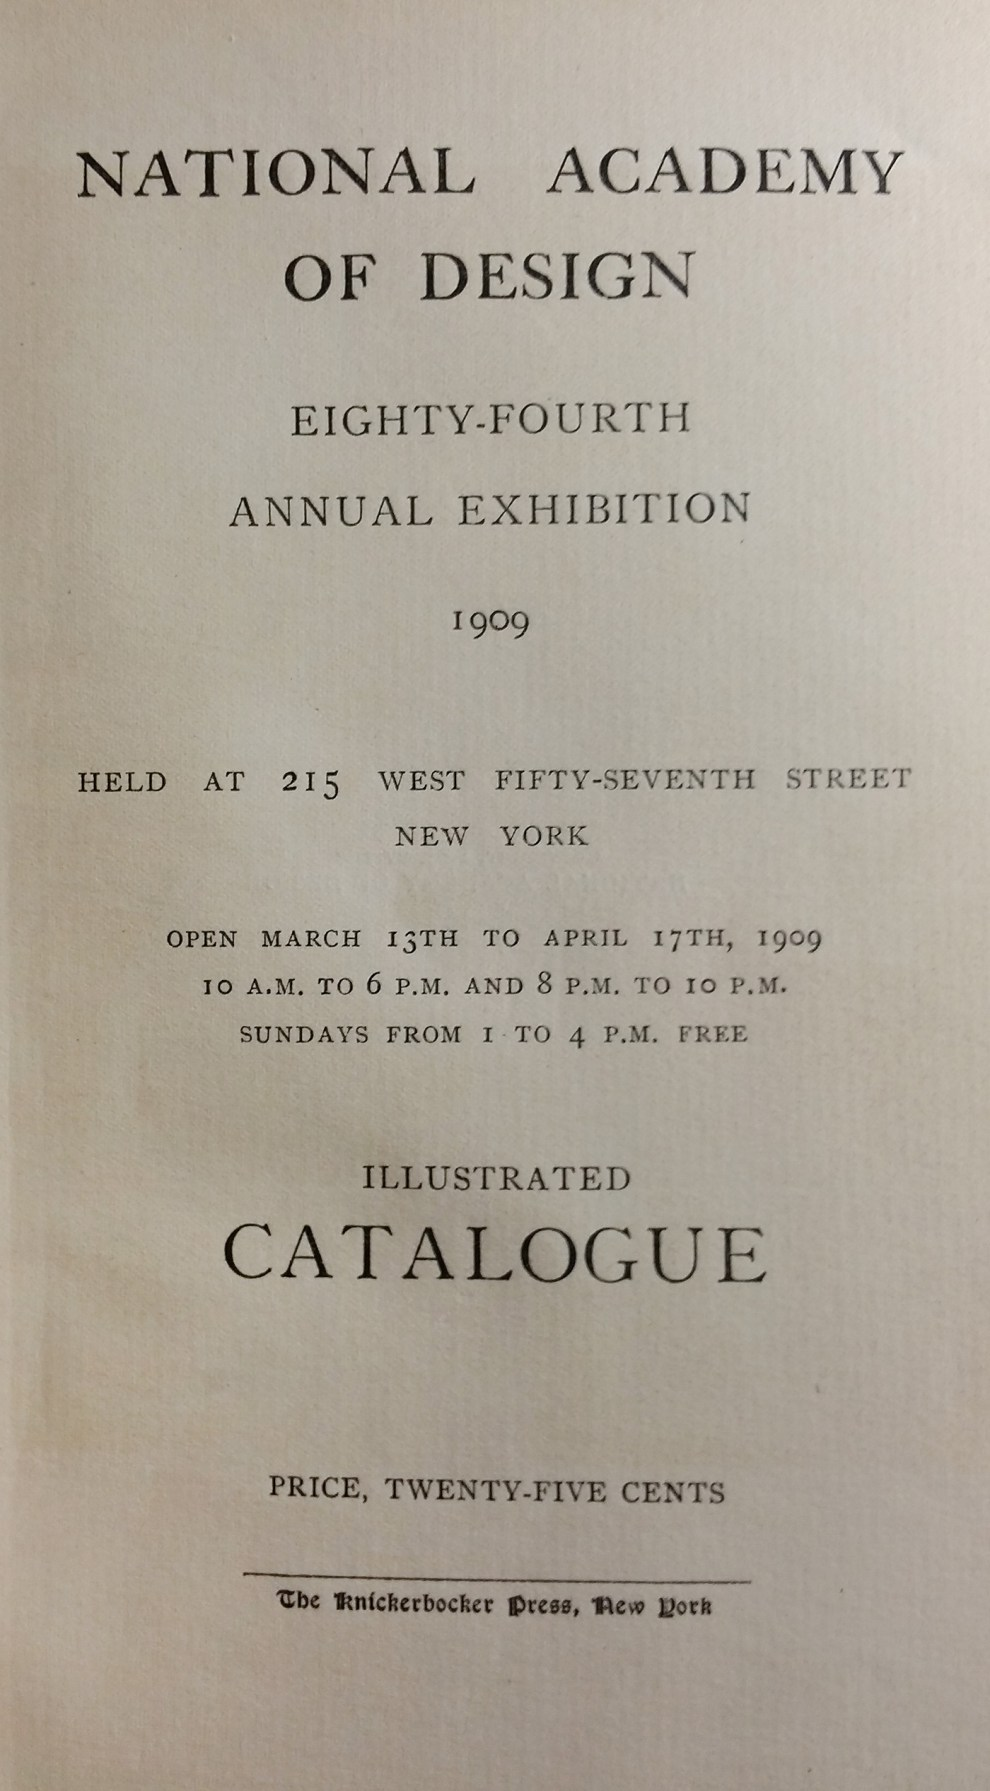 """1909 National Academy of Design, New York, NY, """"Eighty-Fourth Annual Exhibition"""", March 15 - April 17"""